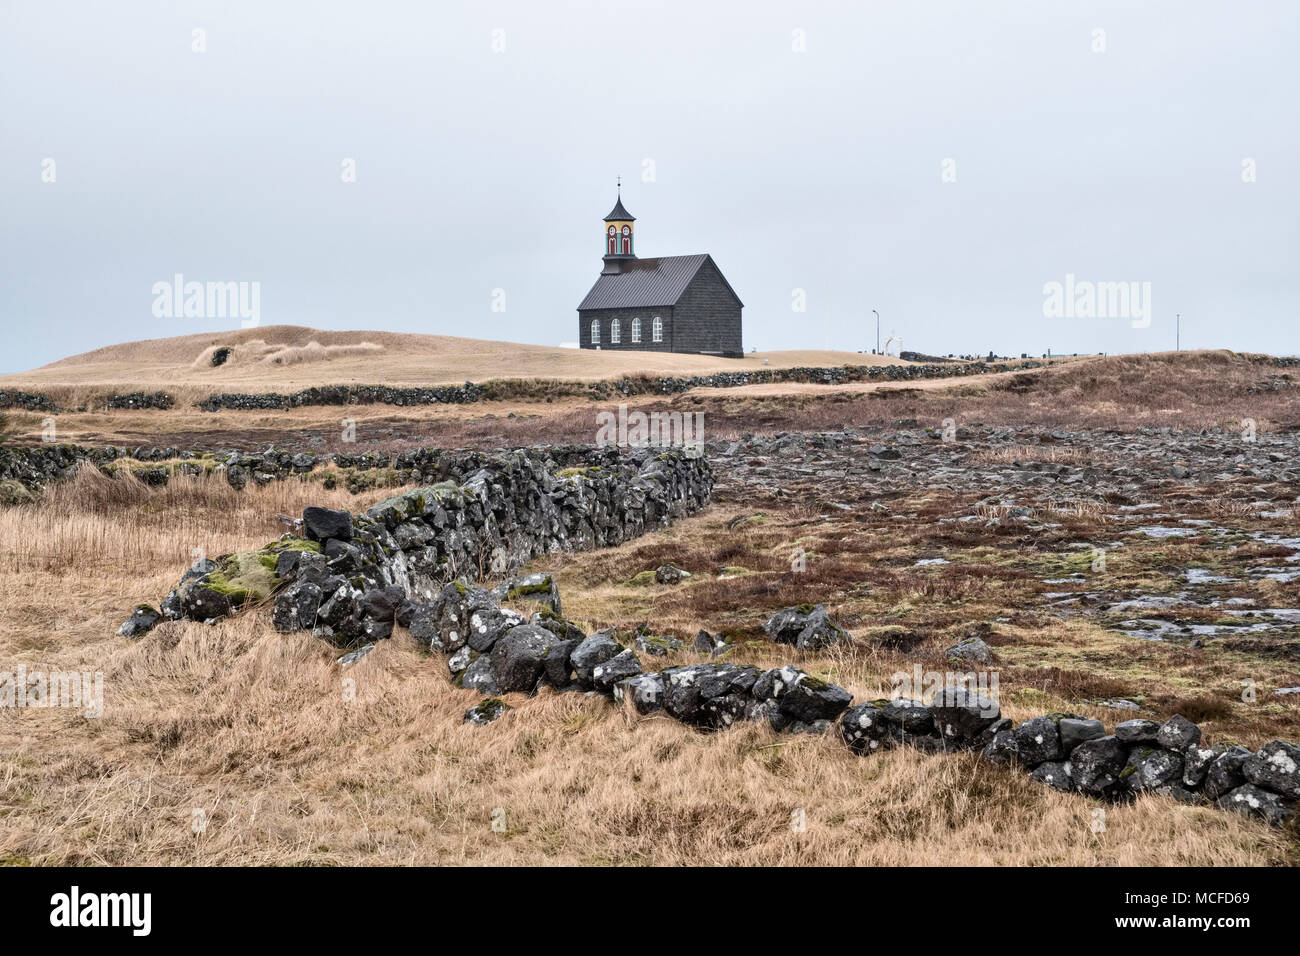 On the Reykjanes peninsula, Iceland. Hvalsnes church, (Hvalsneskirkja), Sandgerði, built in 1887 of black basalt stone - Stock Image